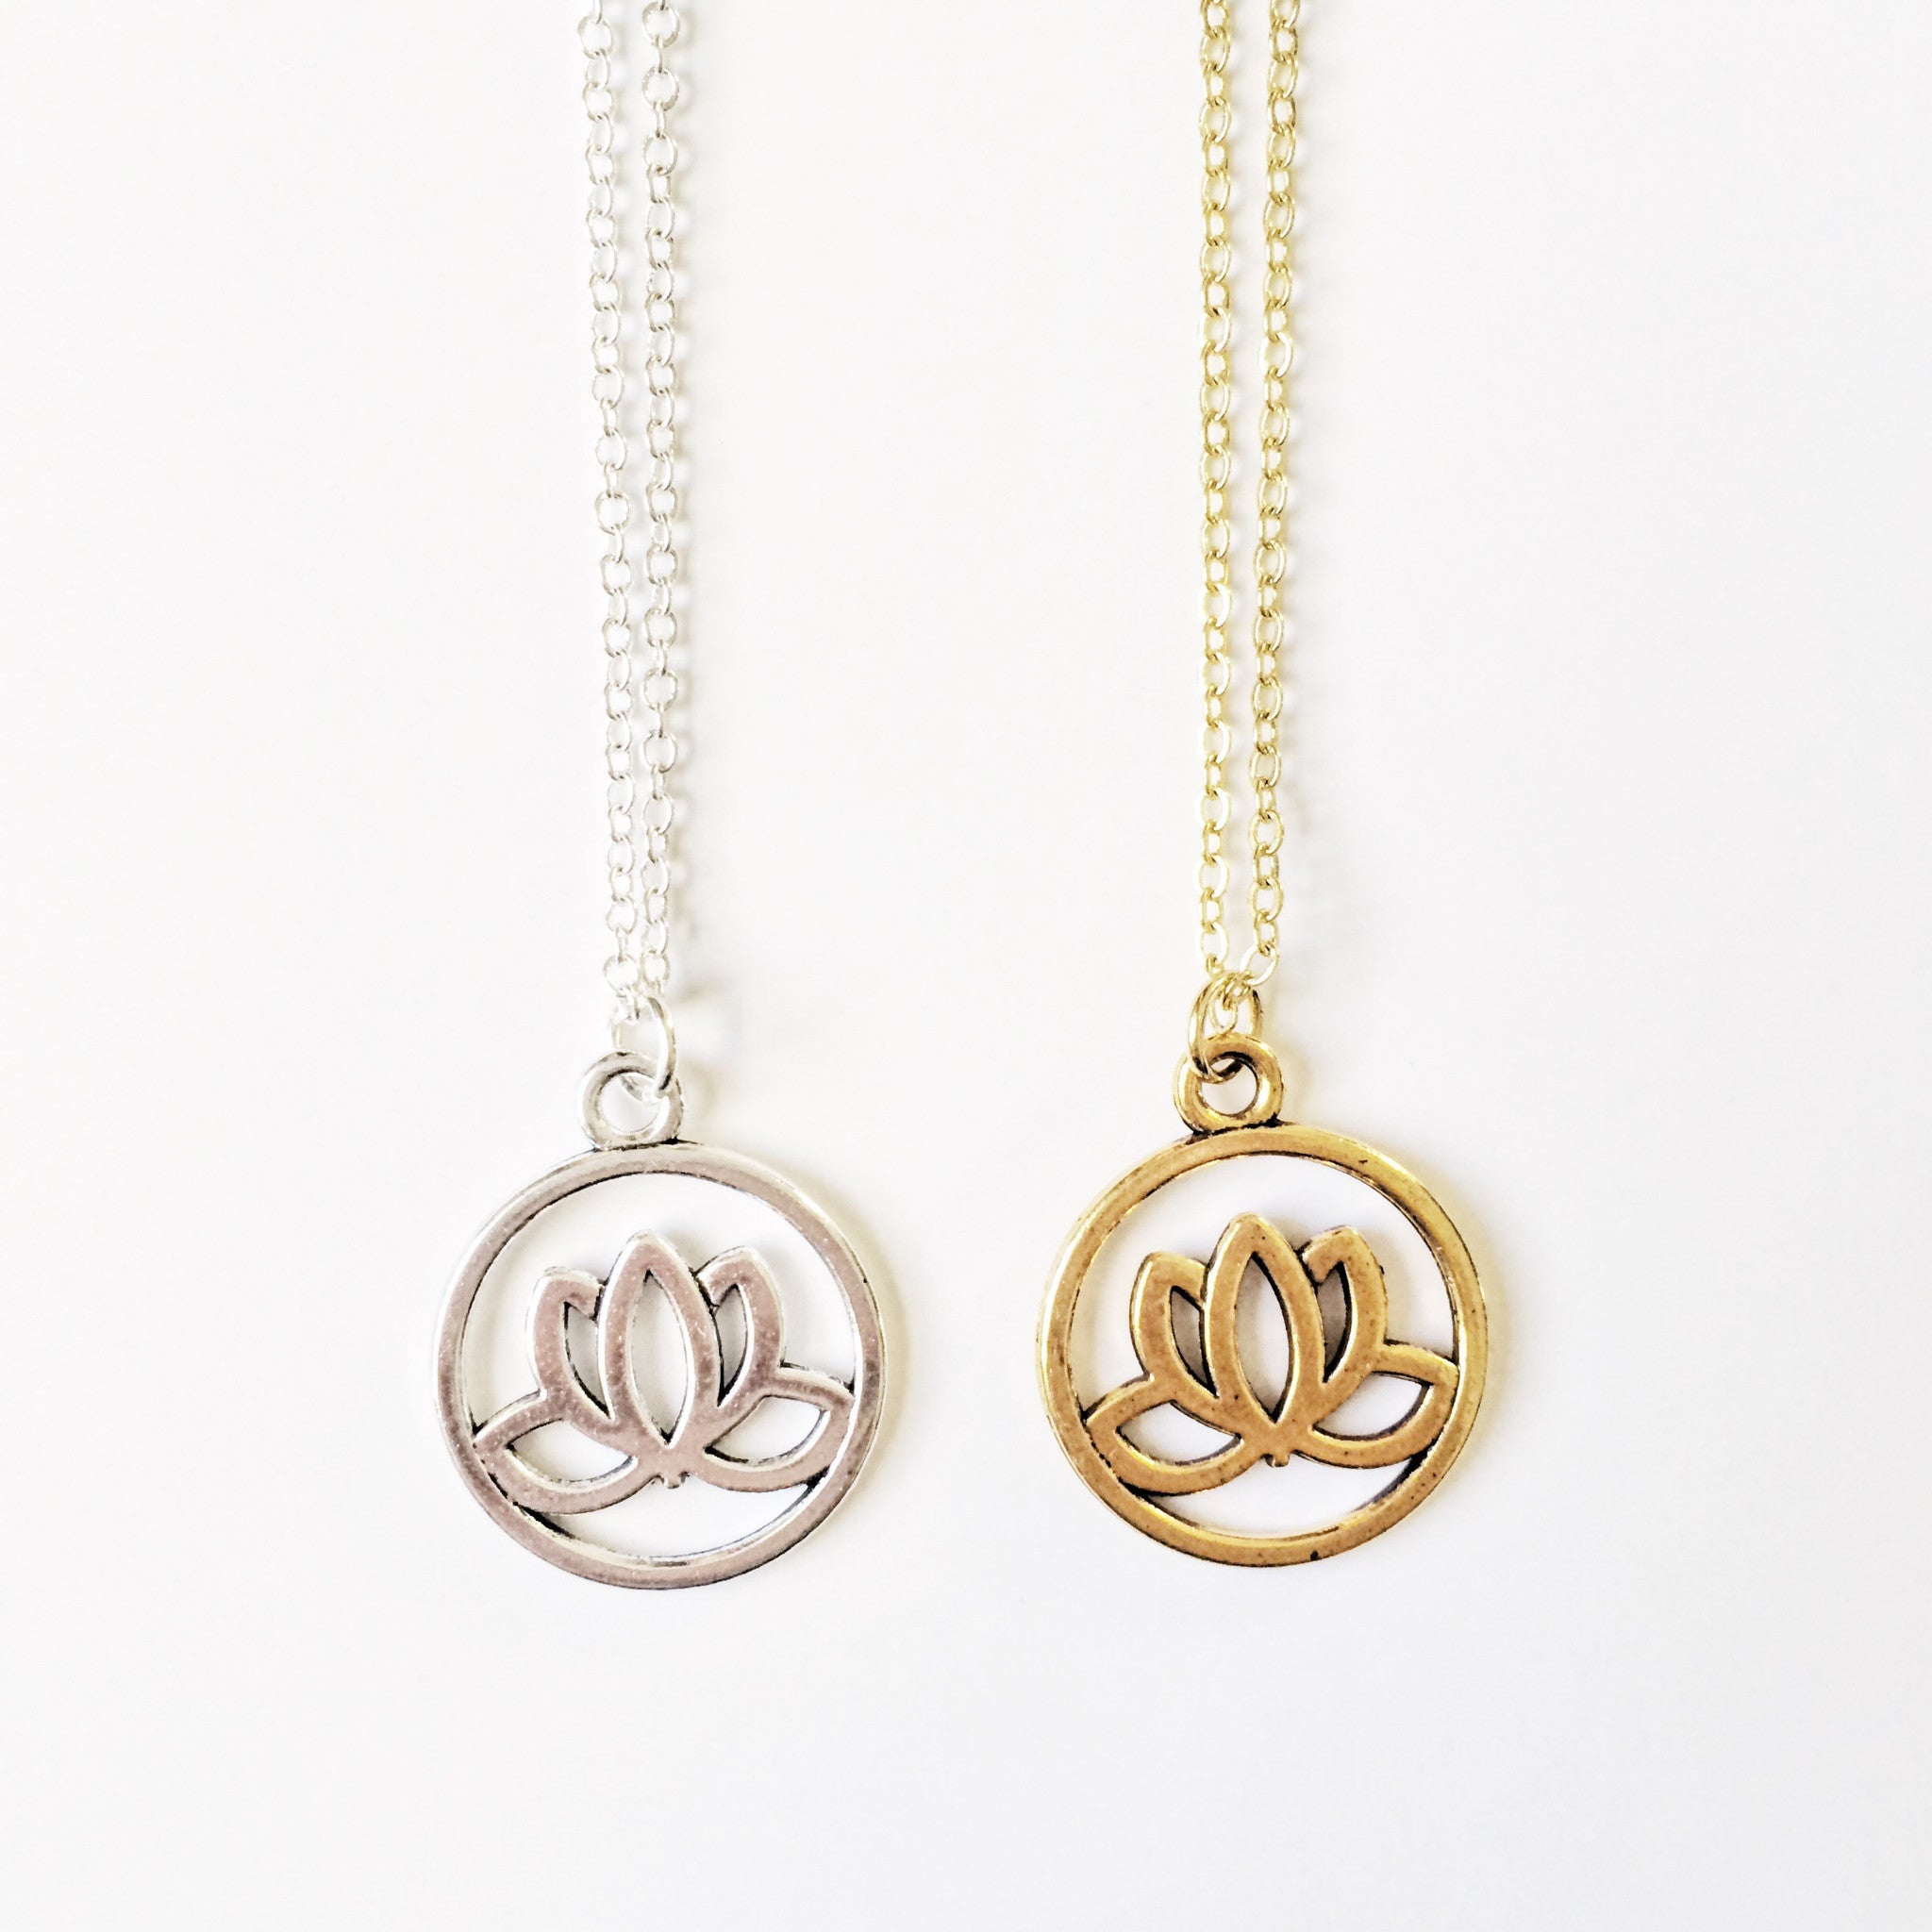 pendent gold charm solid pin small lotus flower yoga necklace